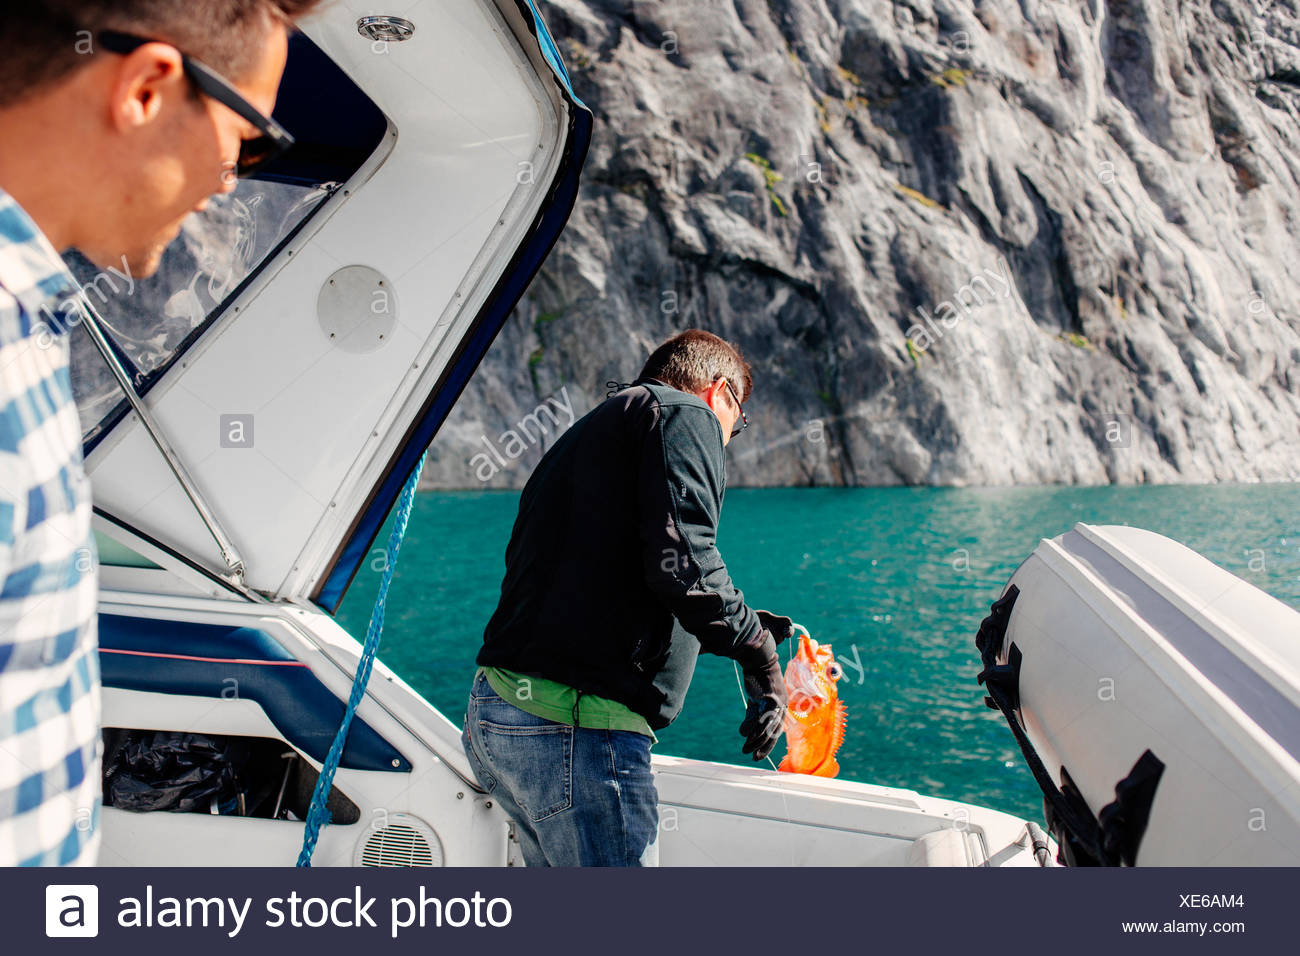 Men standing on nautical vessel and fishing at sea - Stock Image